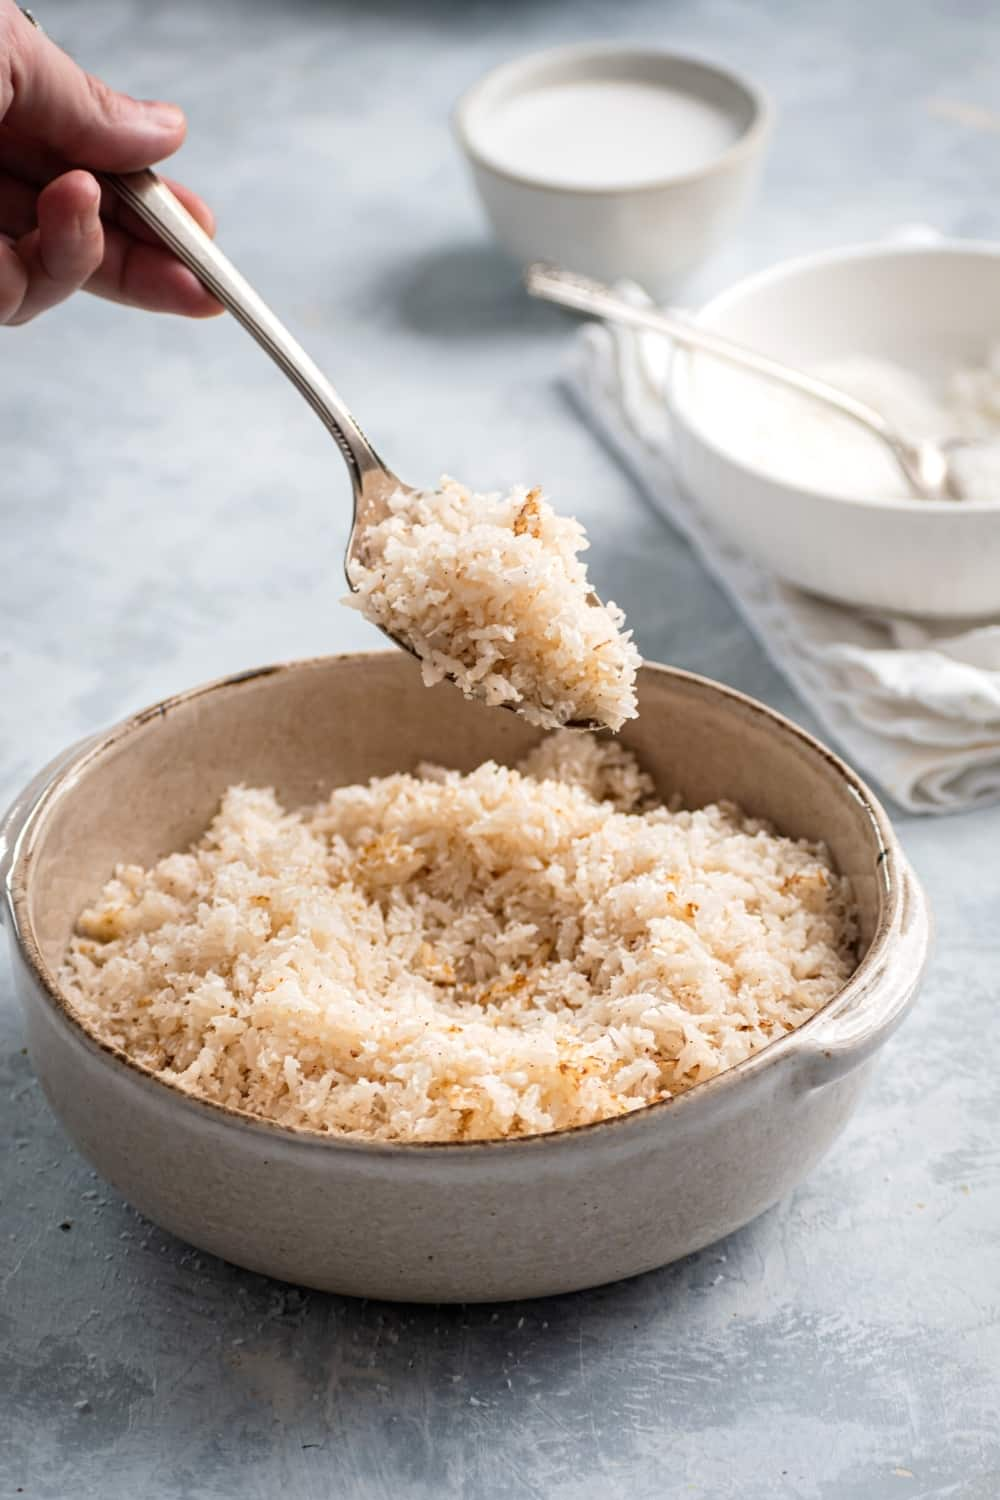 A bowl filled with coconut rice. A hand is holding a spoon over the ball with a scoop of coconut rice on it.